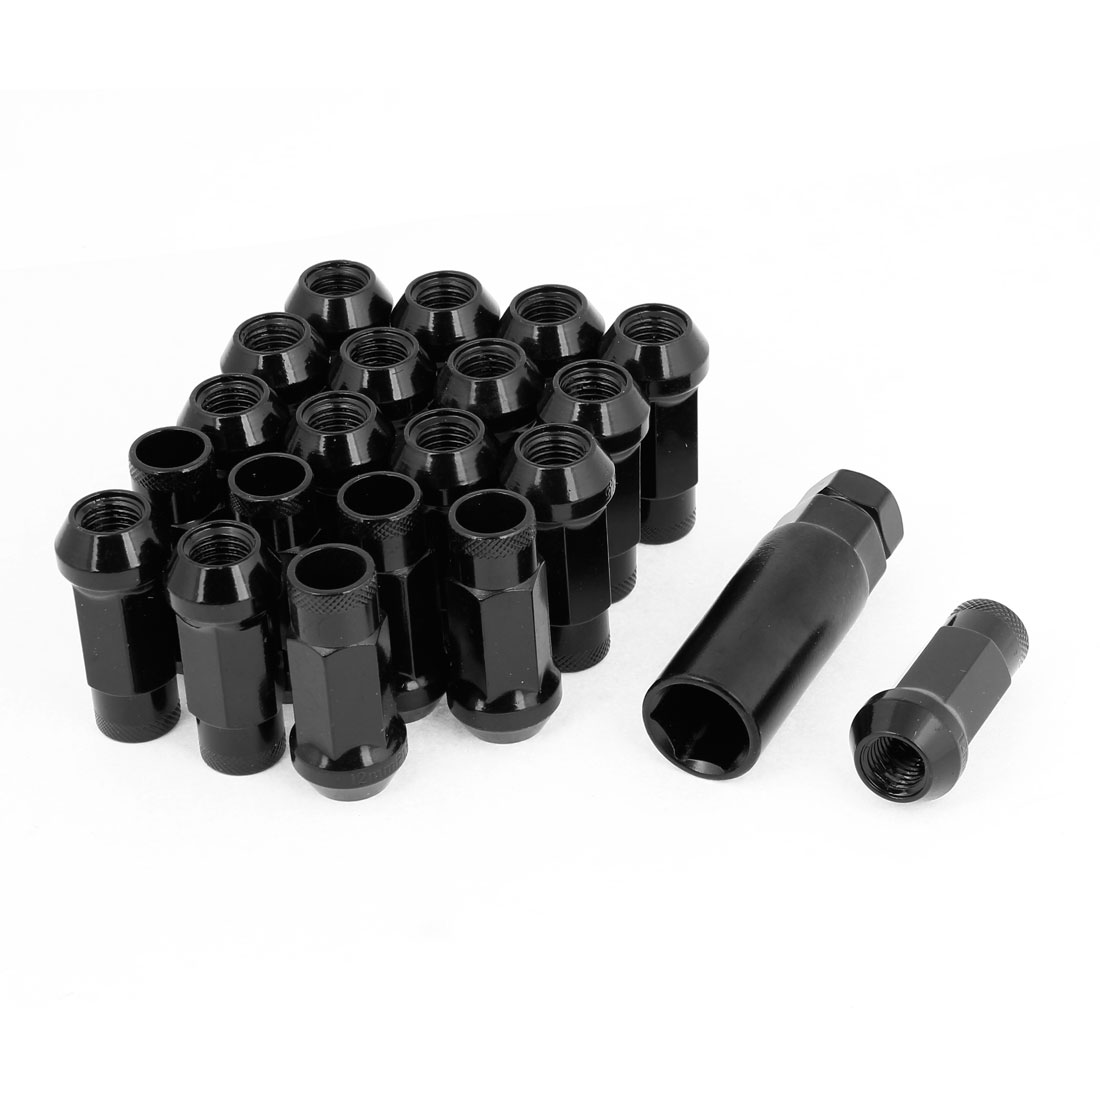 21 Pcs 12mm x 1.5mm Hexagonal Shape Security Lock Wheel Lug Nuts Black